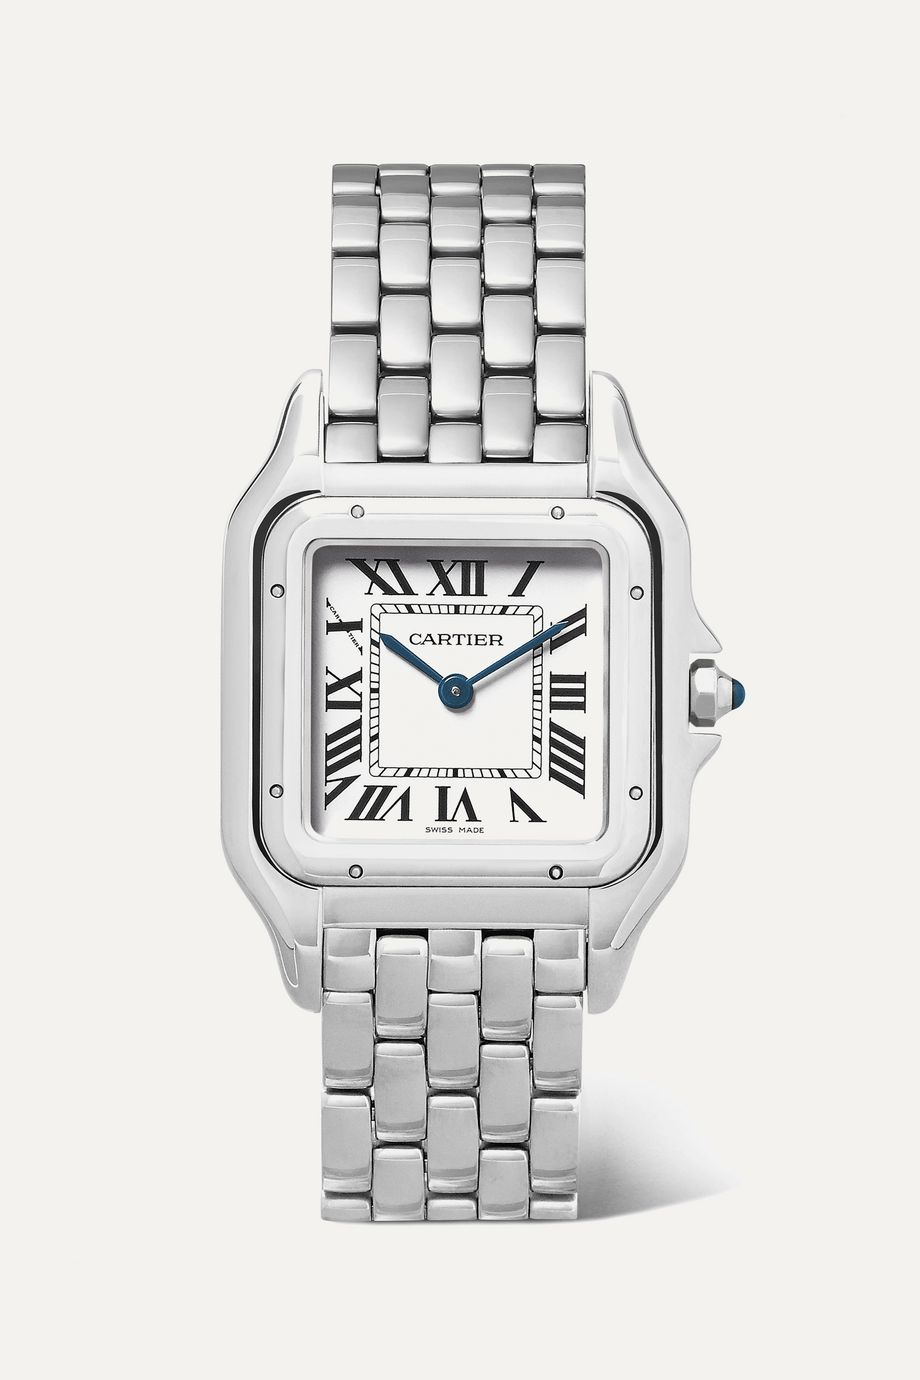 Cartier Panthère de Cartier 27mm medium stainless steel watch